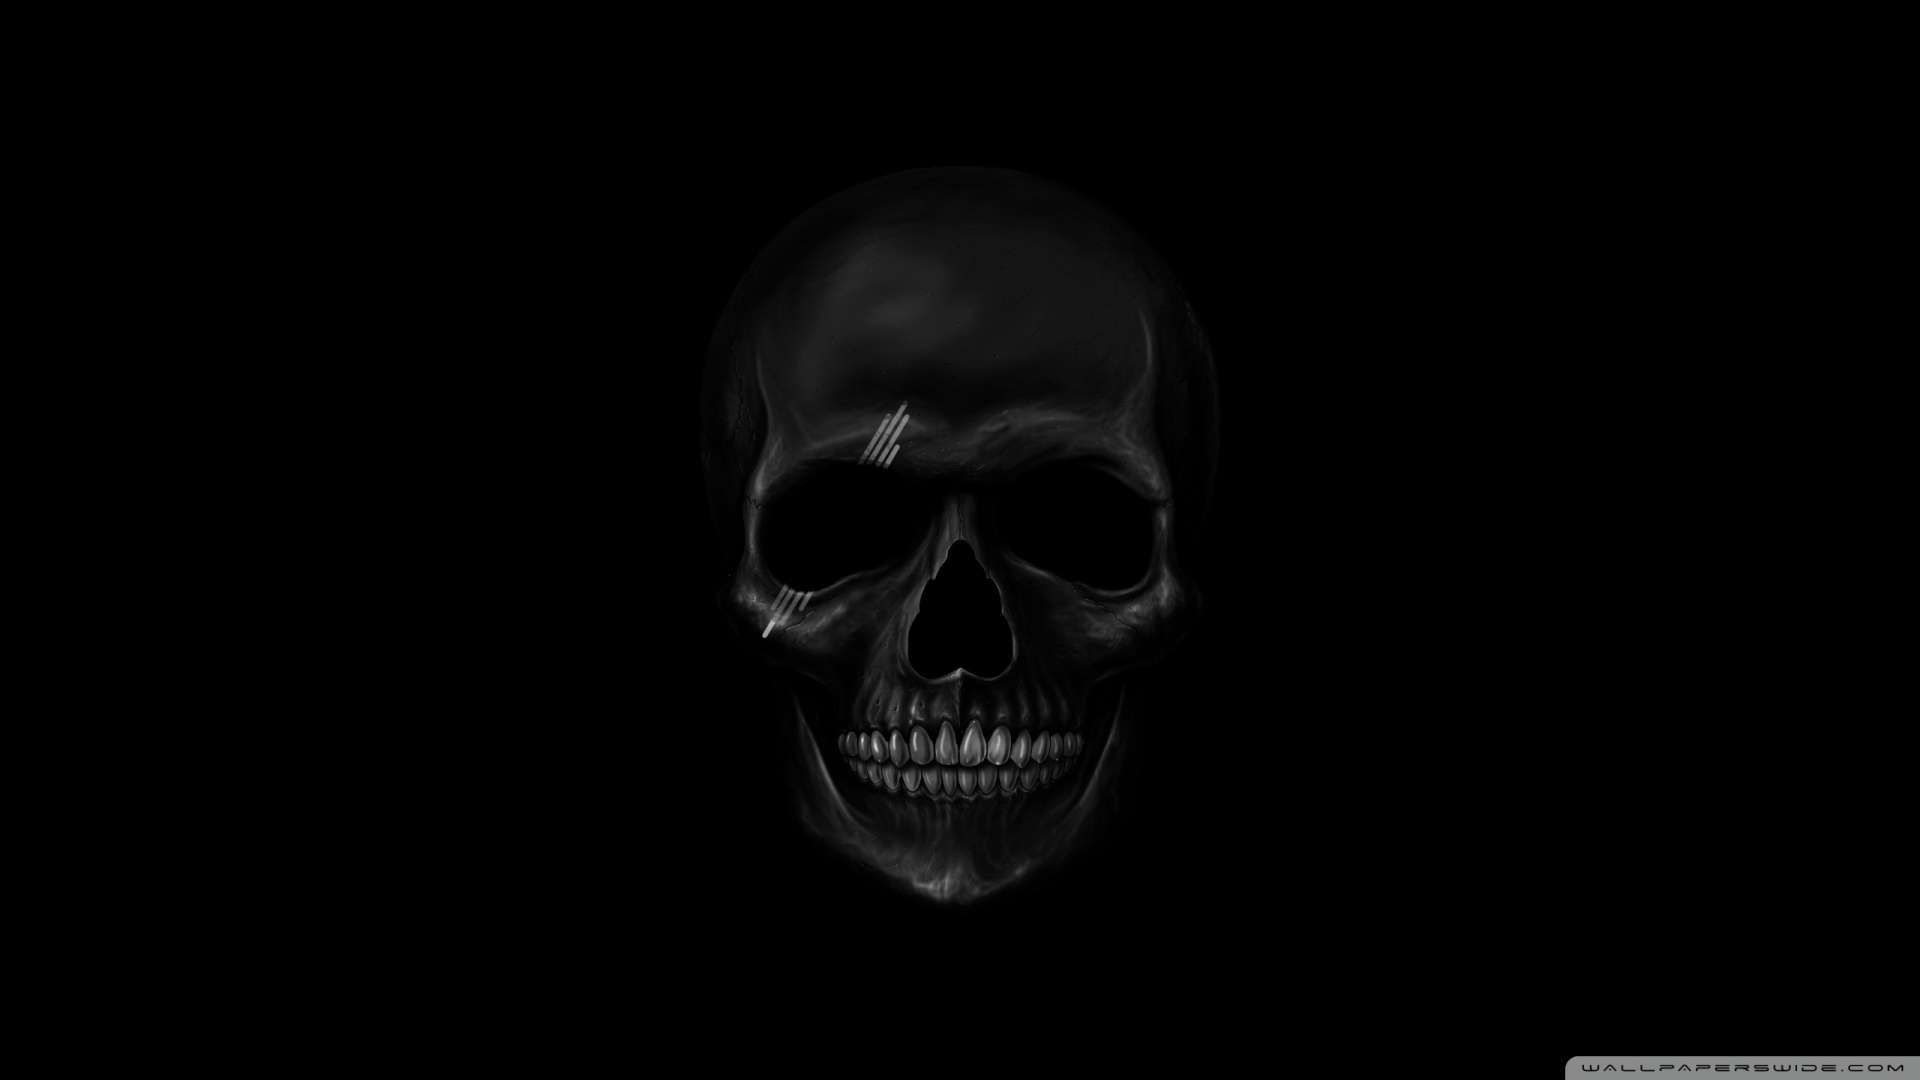 39 Awesome Black Wallpaper Hd 1080p Images Black Skulls Wallpaper Black Hd Wallpaper Skull Wallpaper